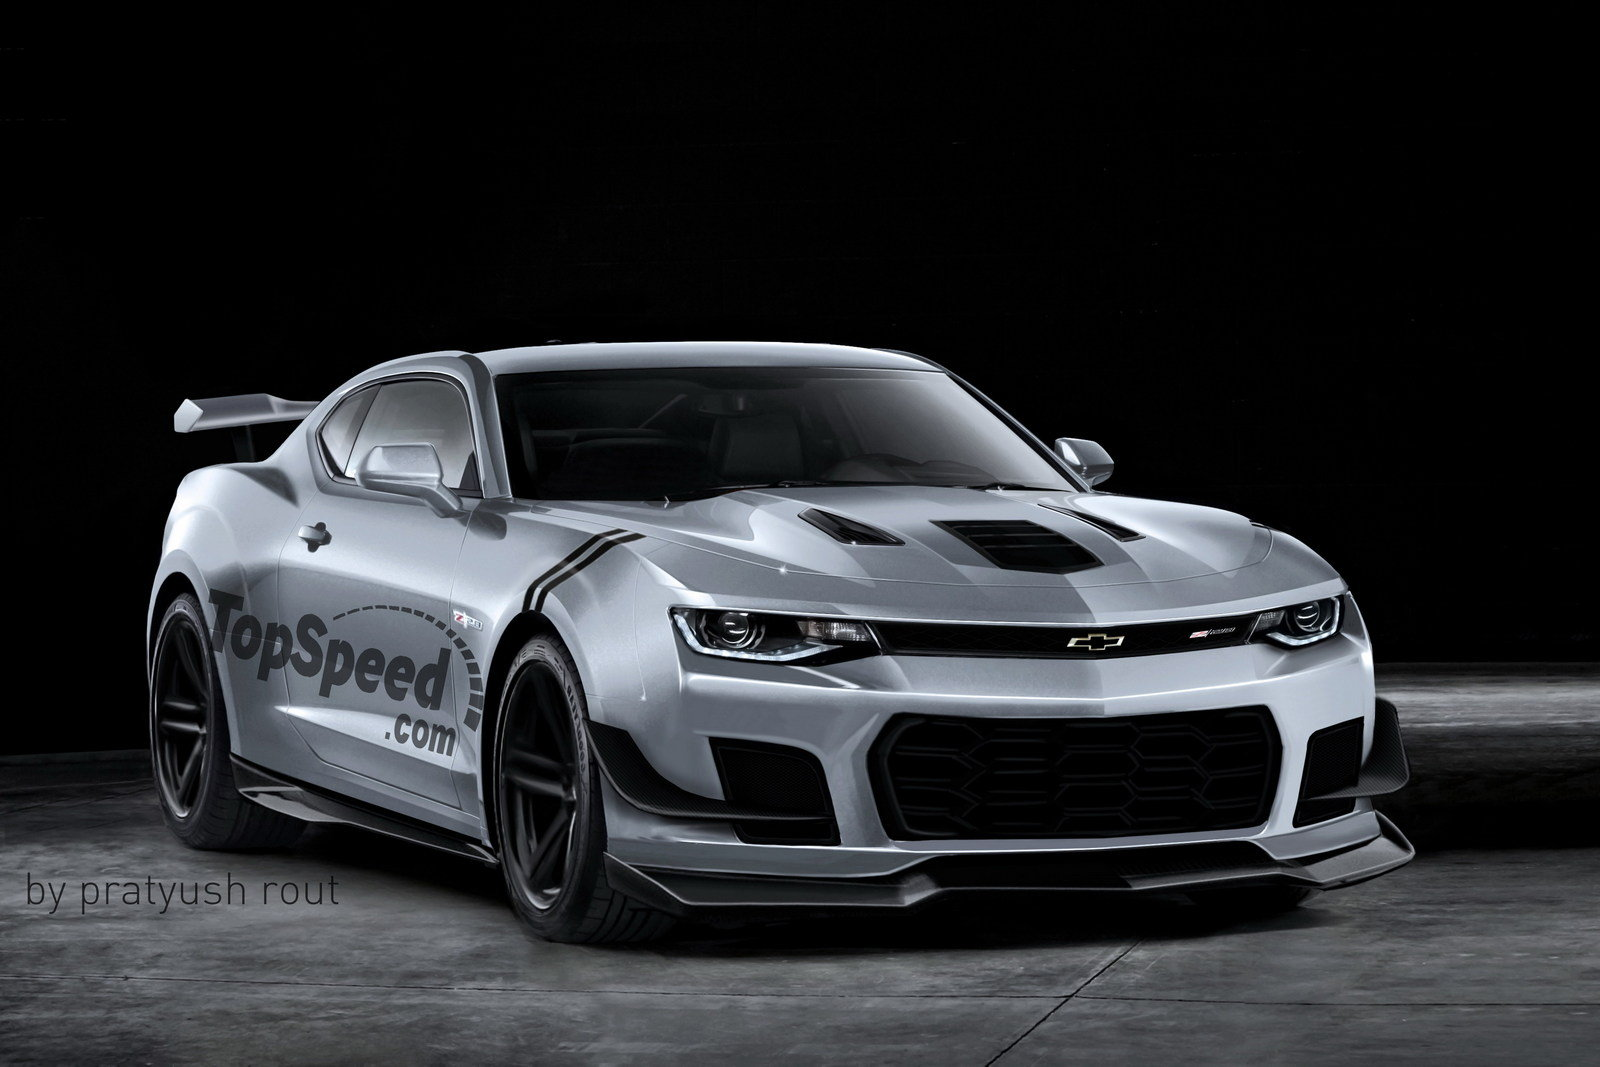 2018 chevrolet camaro z 28 picture 676246 car review top speed. Black Bedroom Furniture Sets. Home Design Ideas